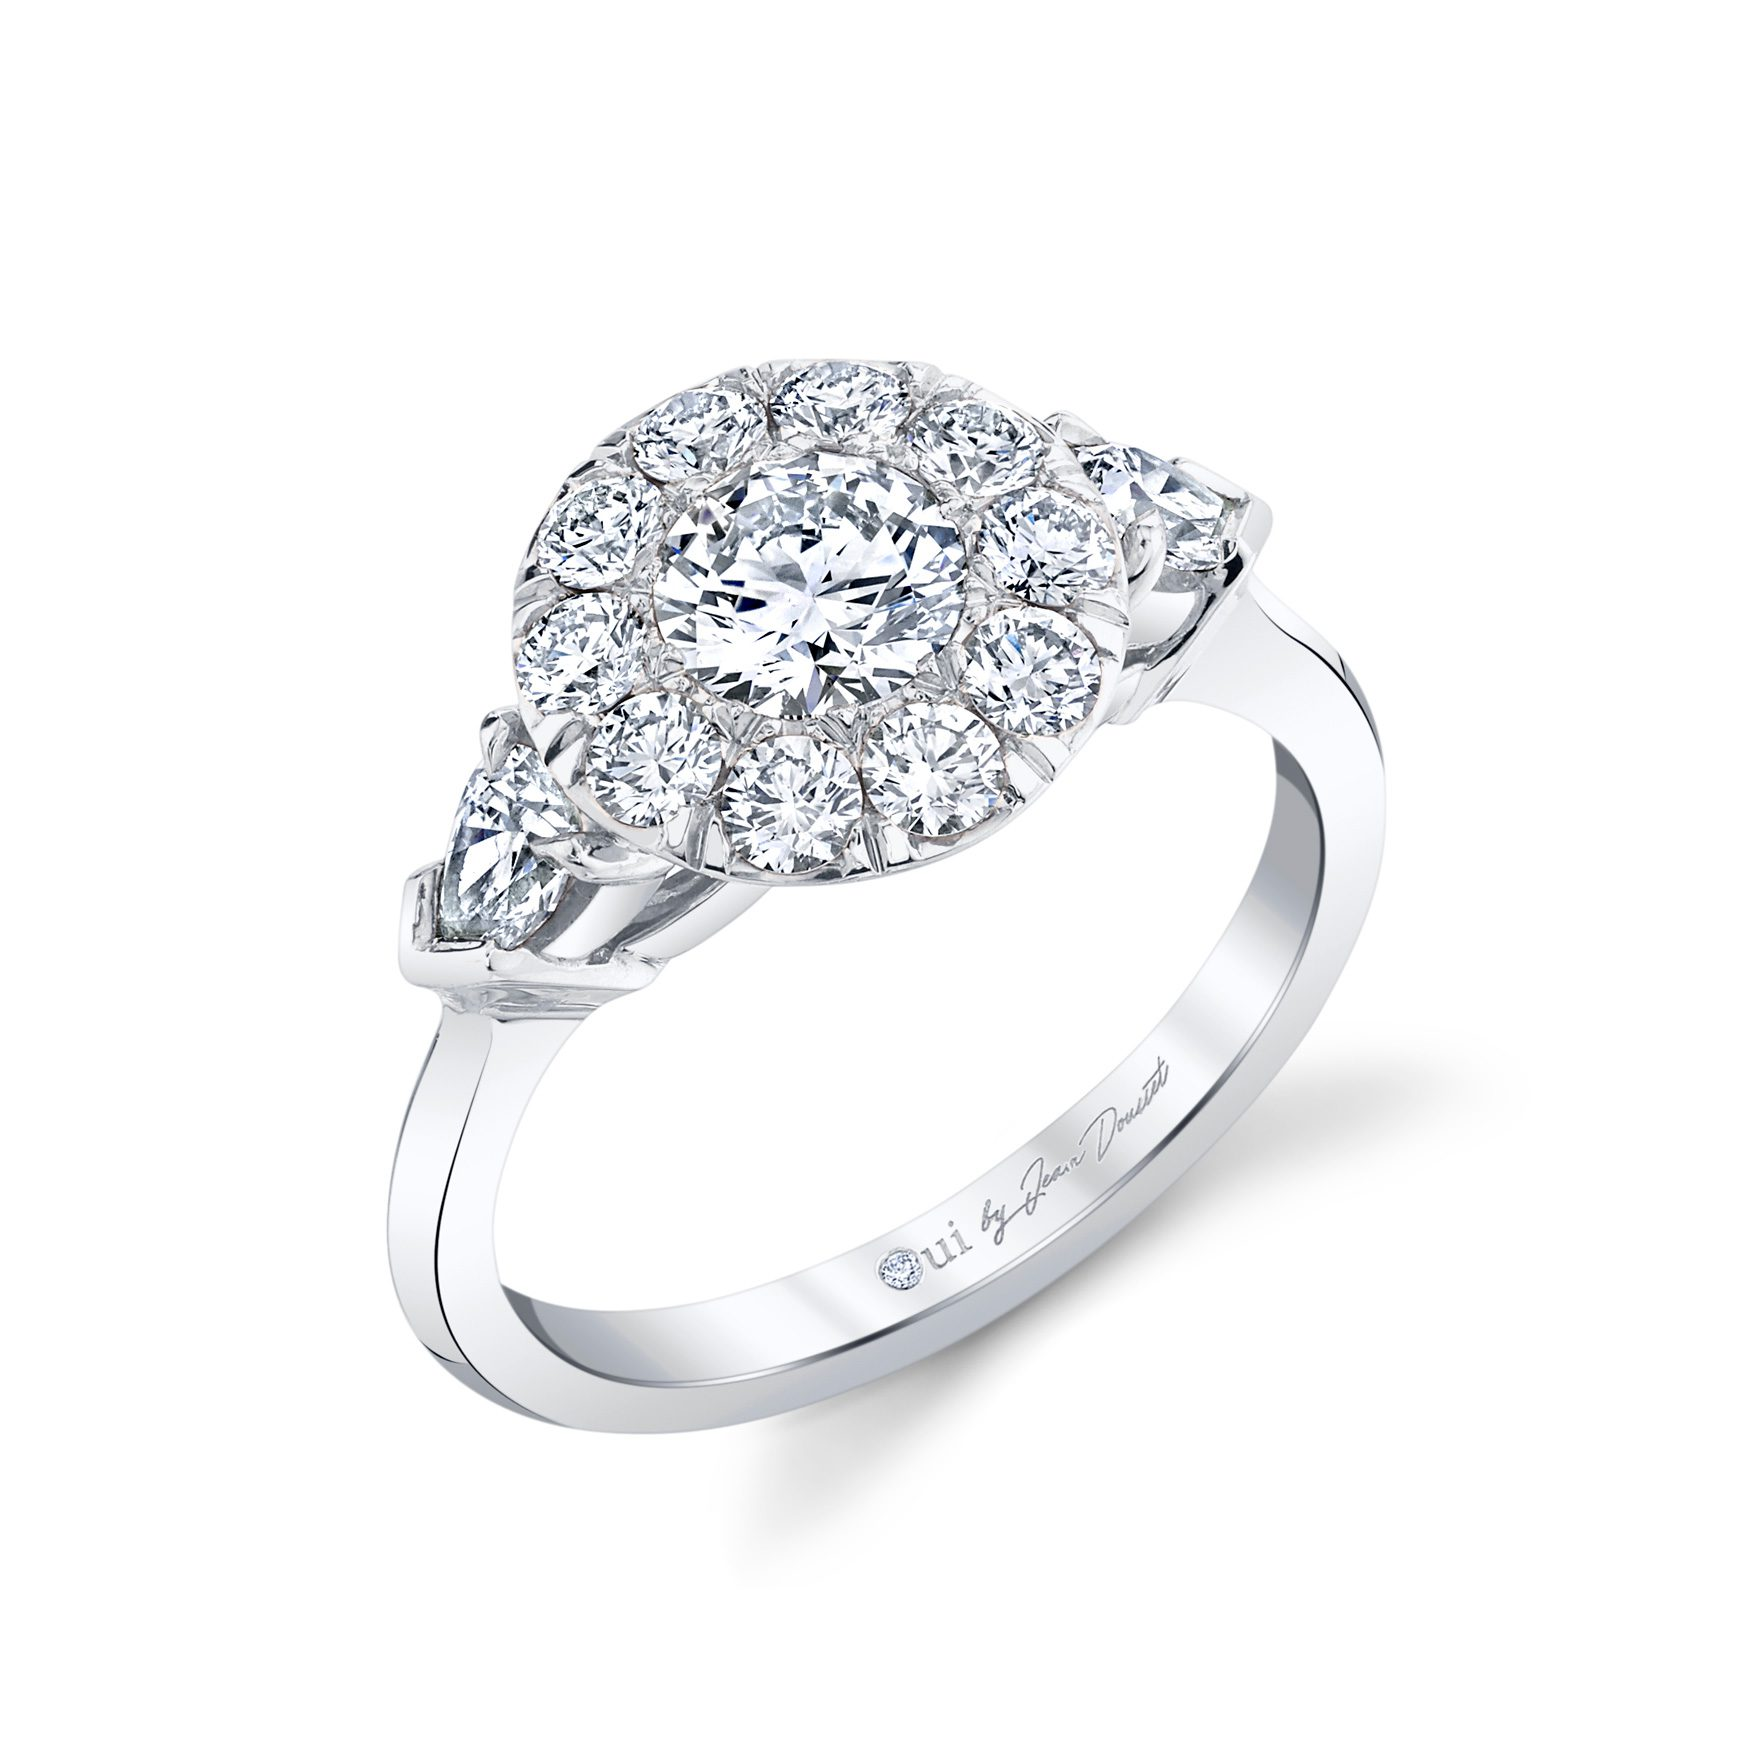 Clementine Round Brilliant Seamless Solitaire® Three Stone Engagement Ring with pear-shaped diamond side stones in 18k White Gold by Oui by Jean Dousset